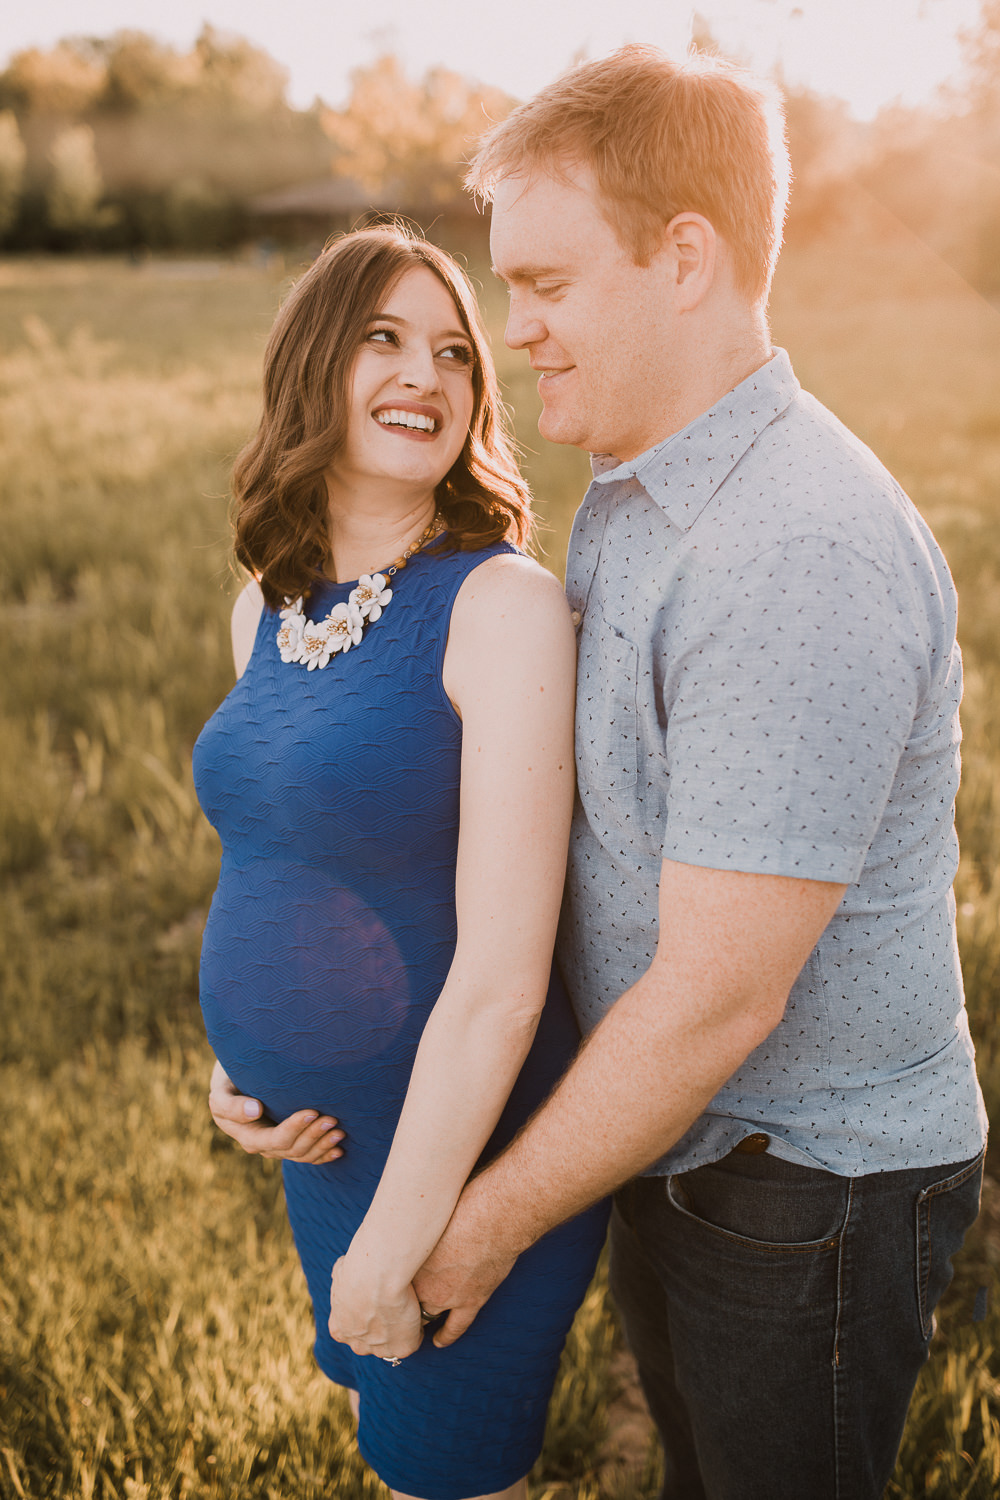 pregnant brunette mom-to-be in blue dress holding husband's hand and smiling at him - Stouffville Lifestyle Photos